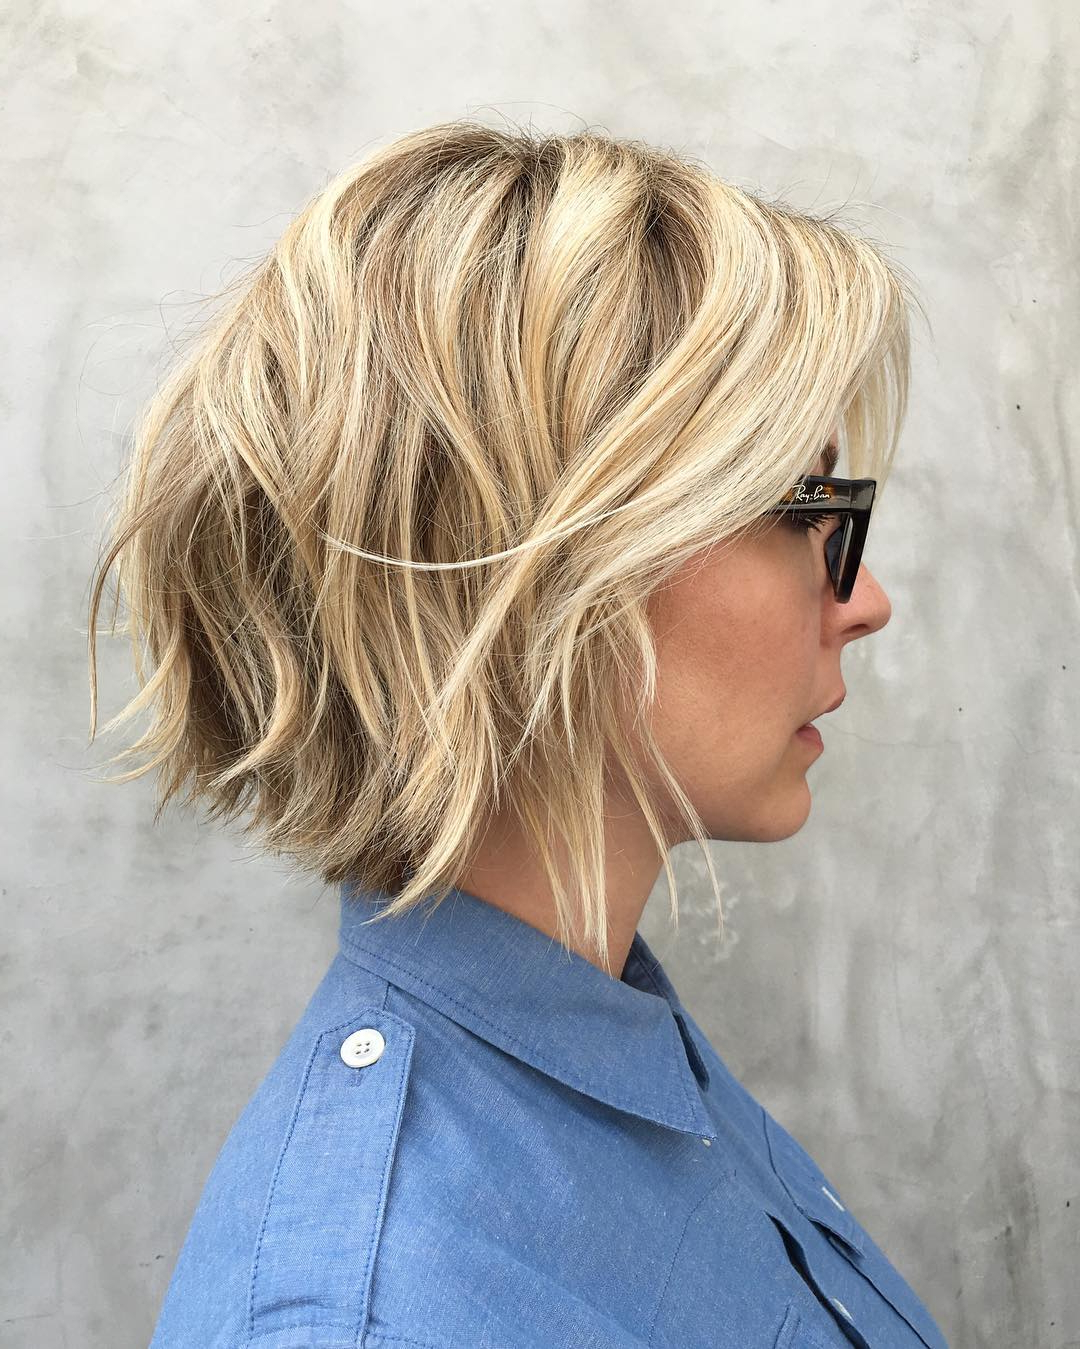 30 Trendiest Shaggy Bob Haircuts Of The Season Intended For White Blonde Curly Layered Bob Hairstyles (View 4 of 20)